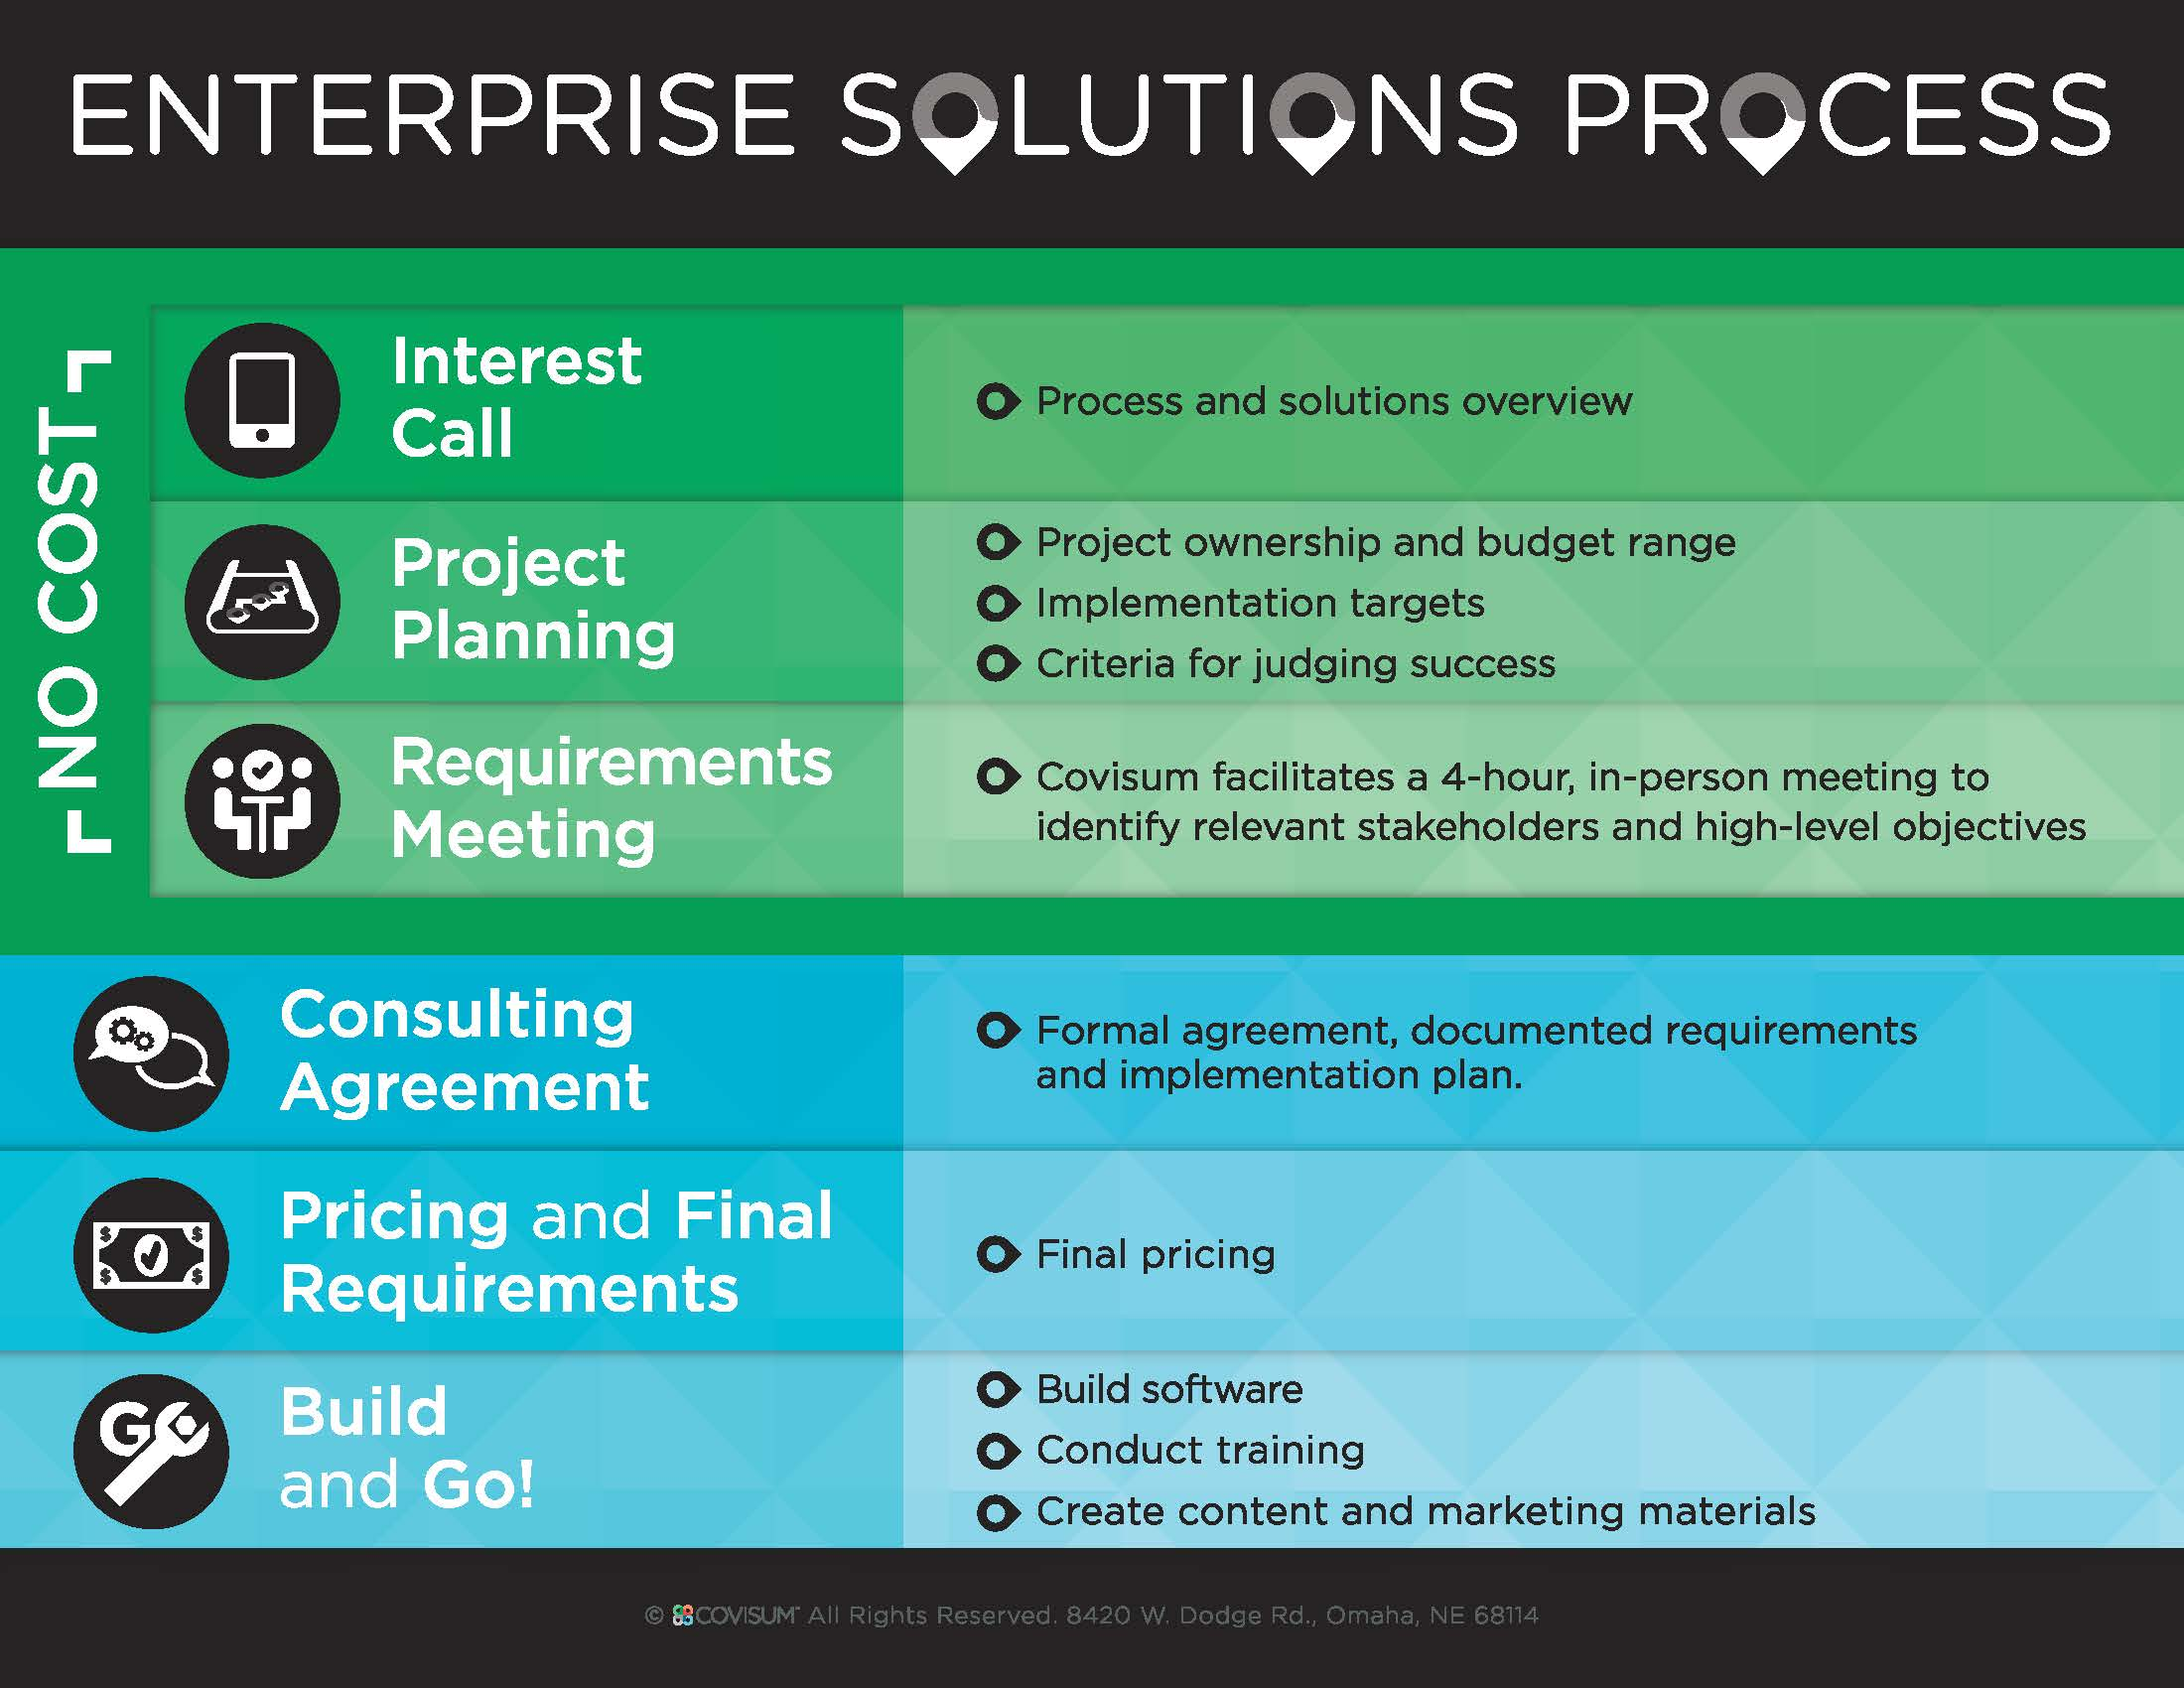 8308_PRINT_Covisum_Enterprise-Solutions-Process-v2c.jpg